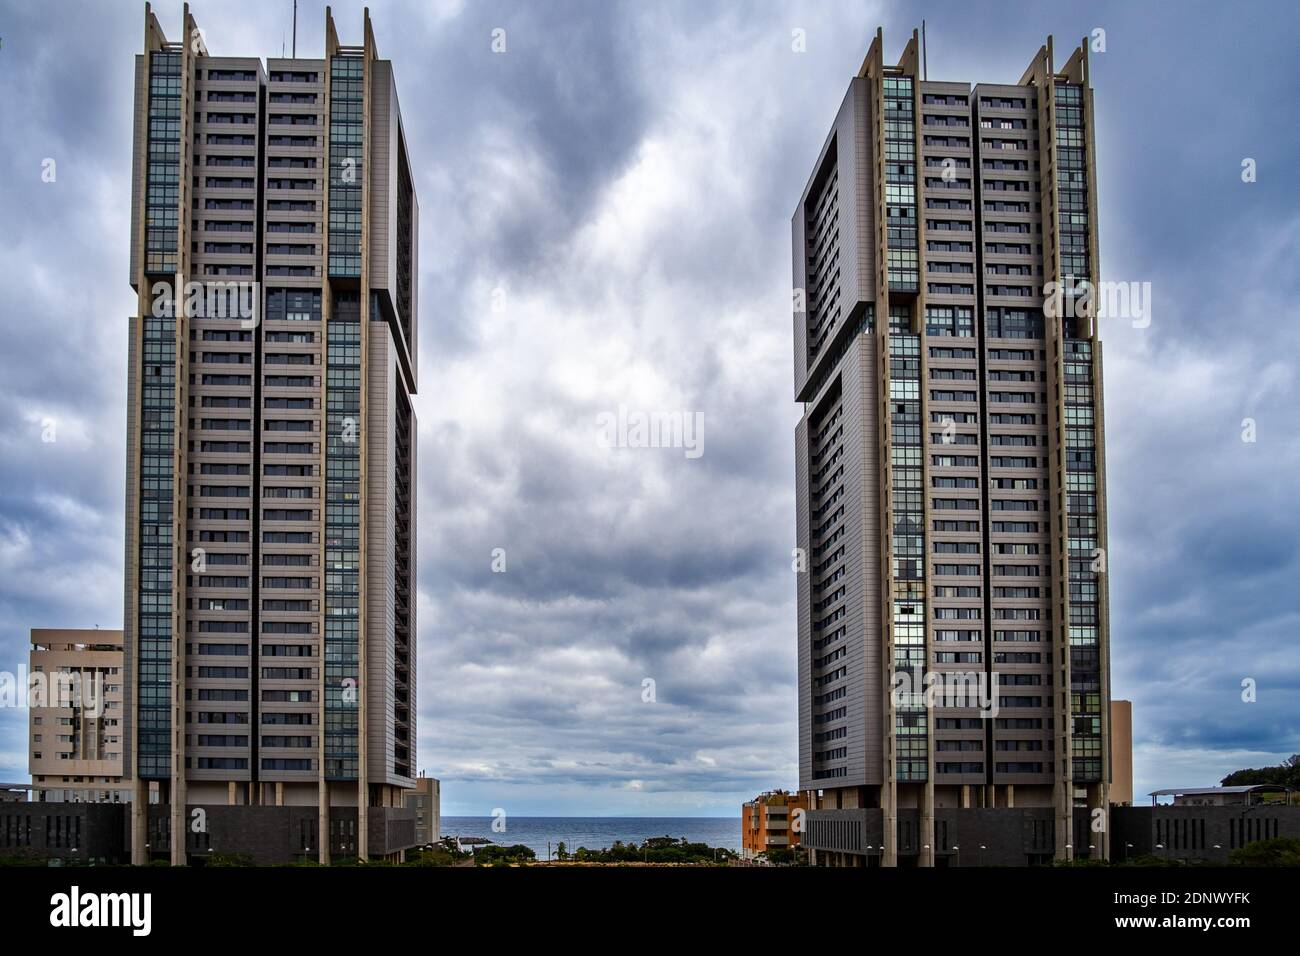 Low Angle View Of Buildings Against Cloudy Sky Stock Photo